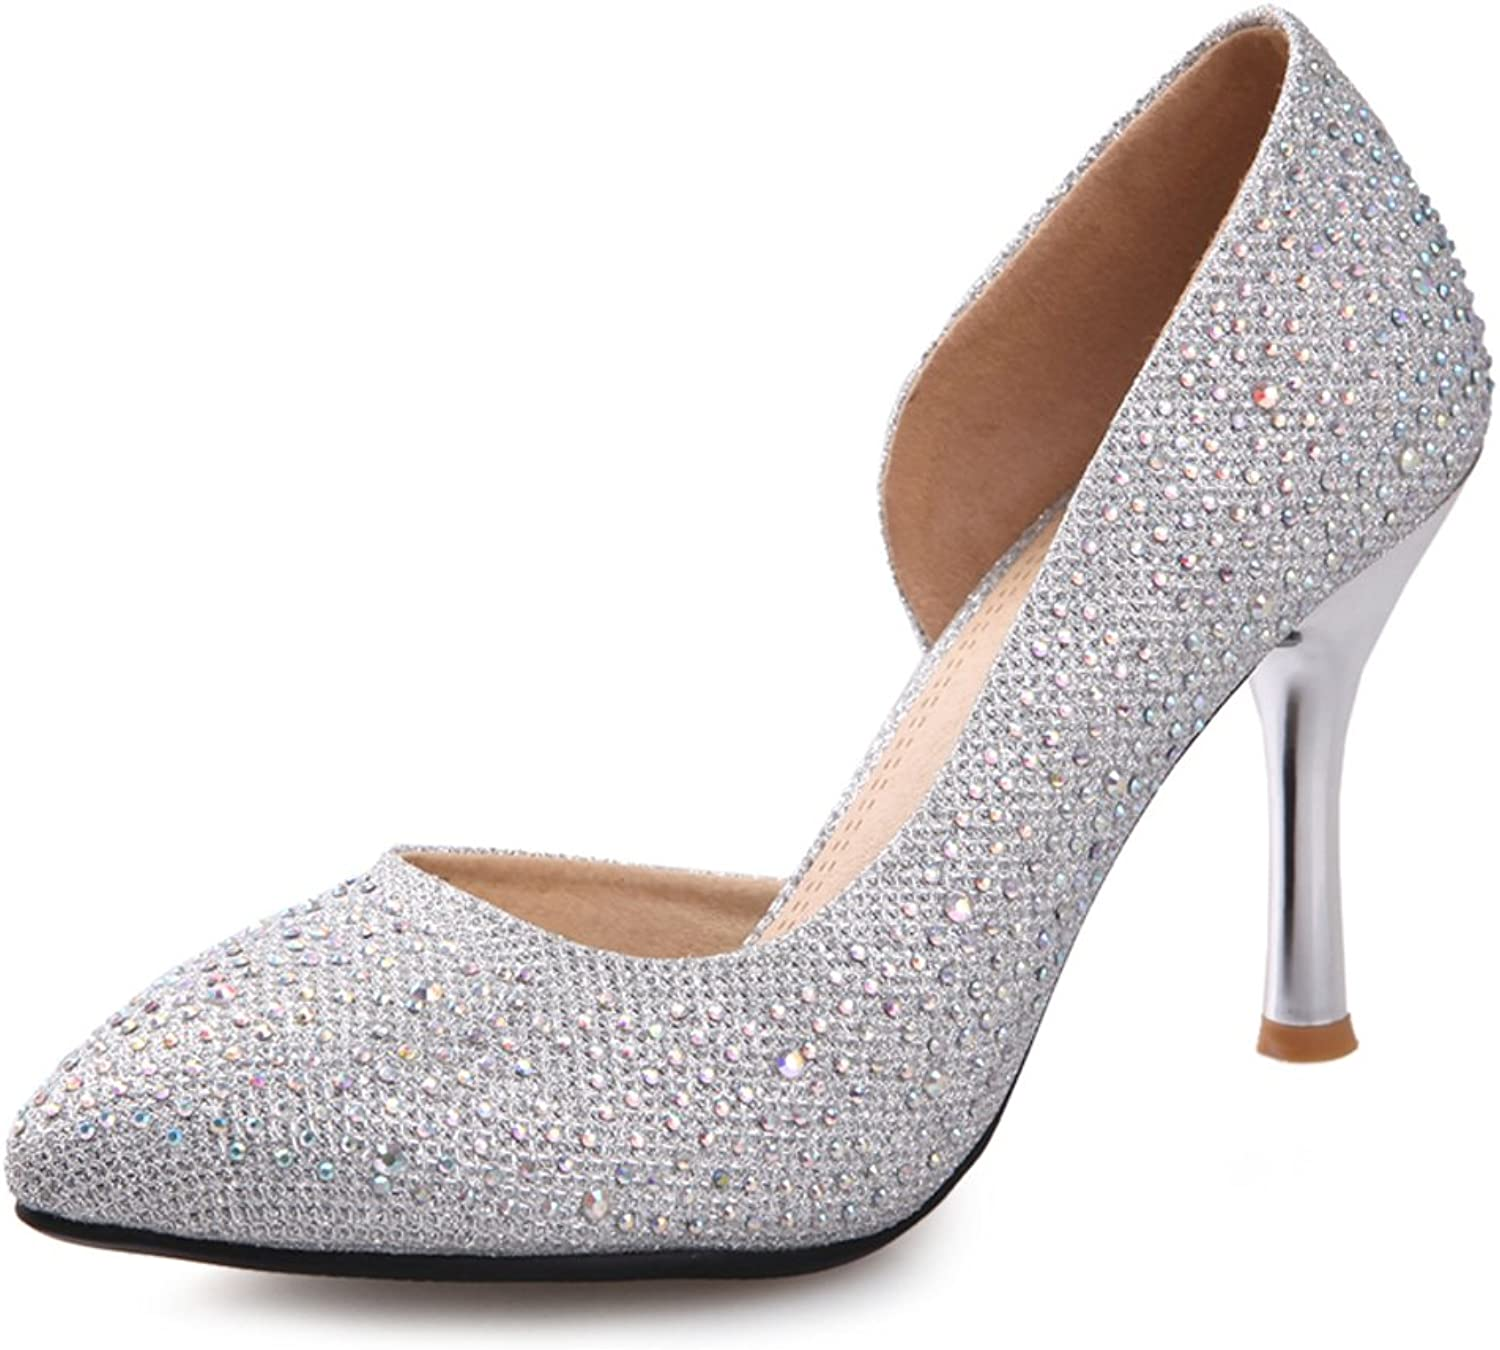 RHFDVGDS silver wedding shoes High heel rhinestone Crystal shoes Stiletto heels shoes Pointed toes thin shoes